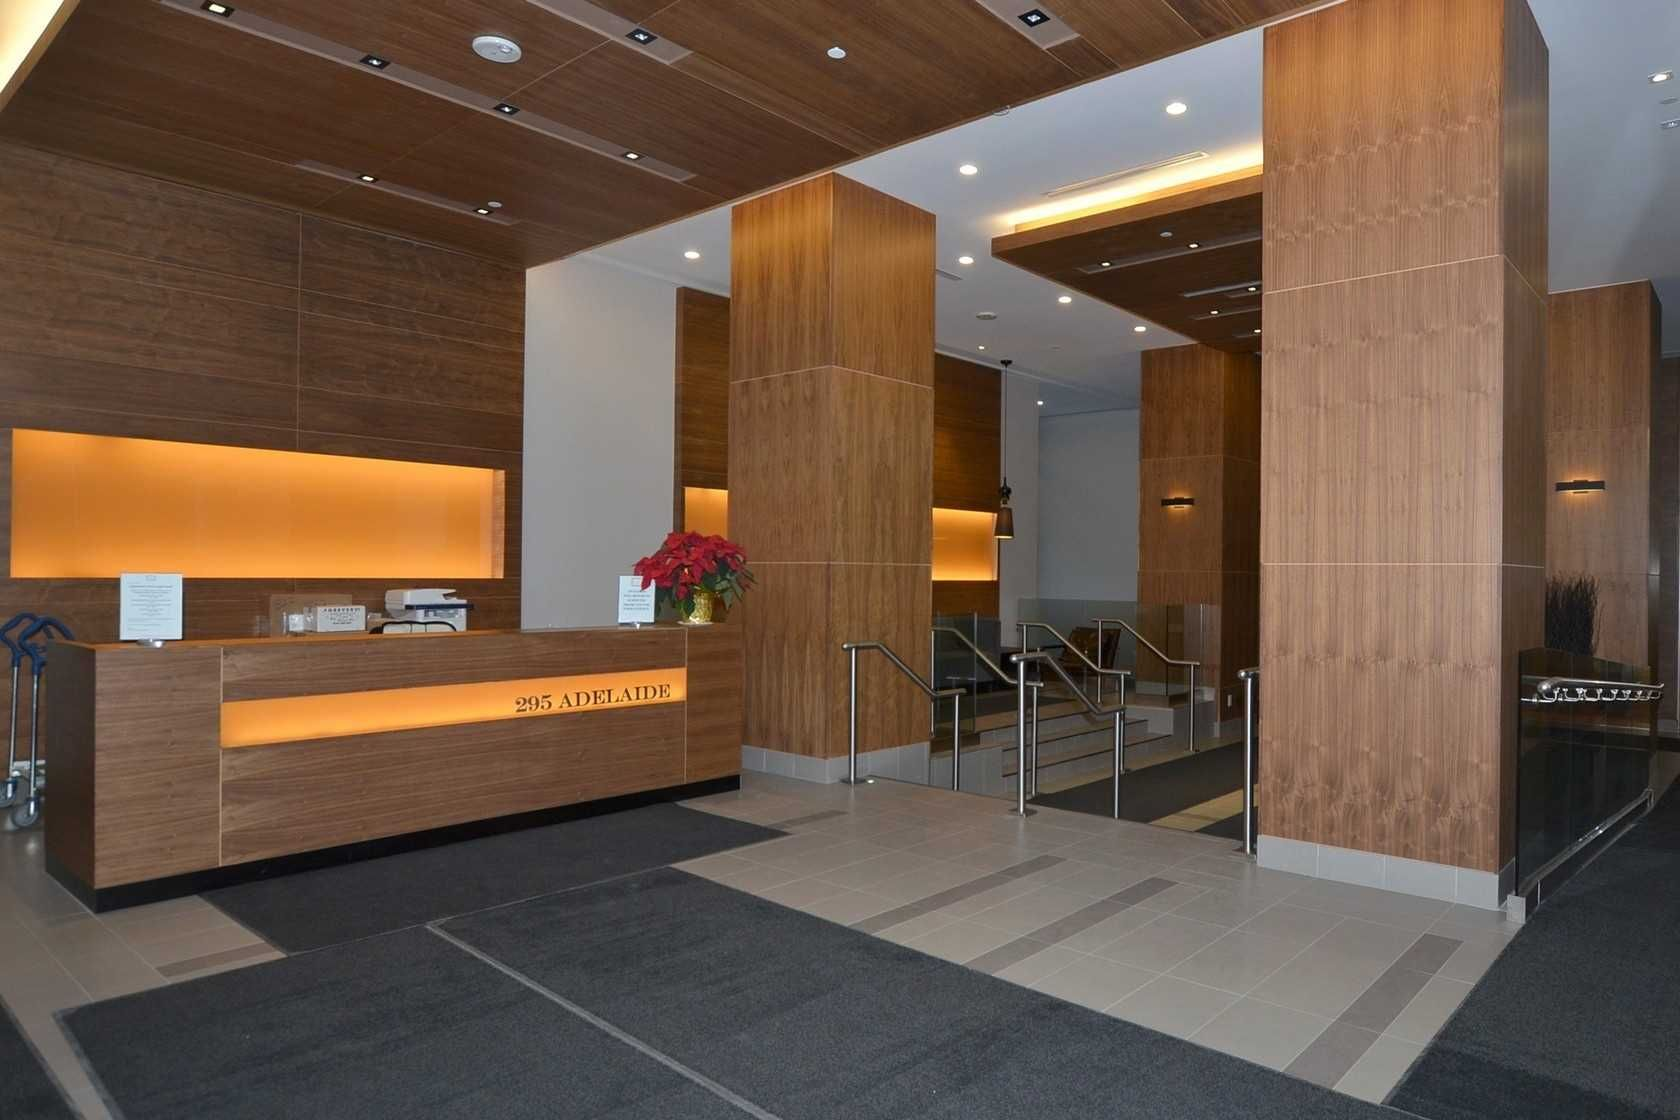 295 Adelaide St W, unit 1015 for rent in Toronto - image #2